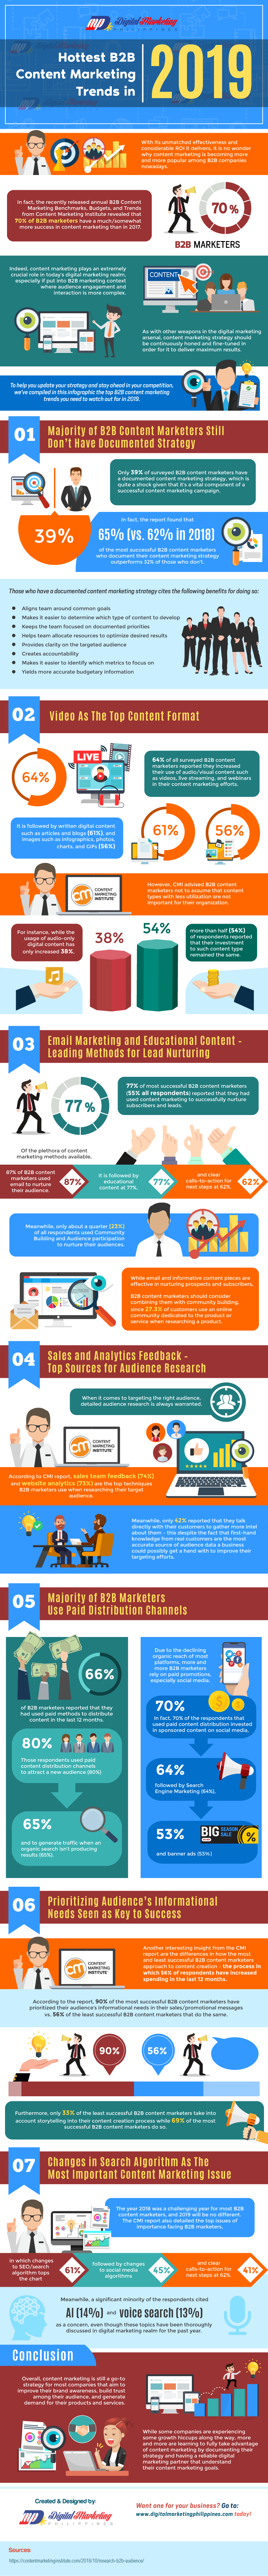 Hottest B2B Content Marketing Trends in 2019 (Infographic) - An Infographic from Digital Marketing Philippines